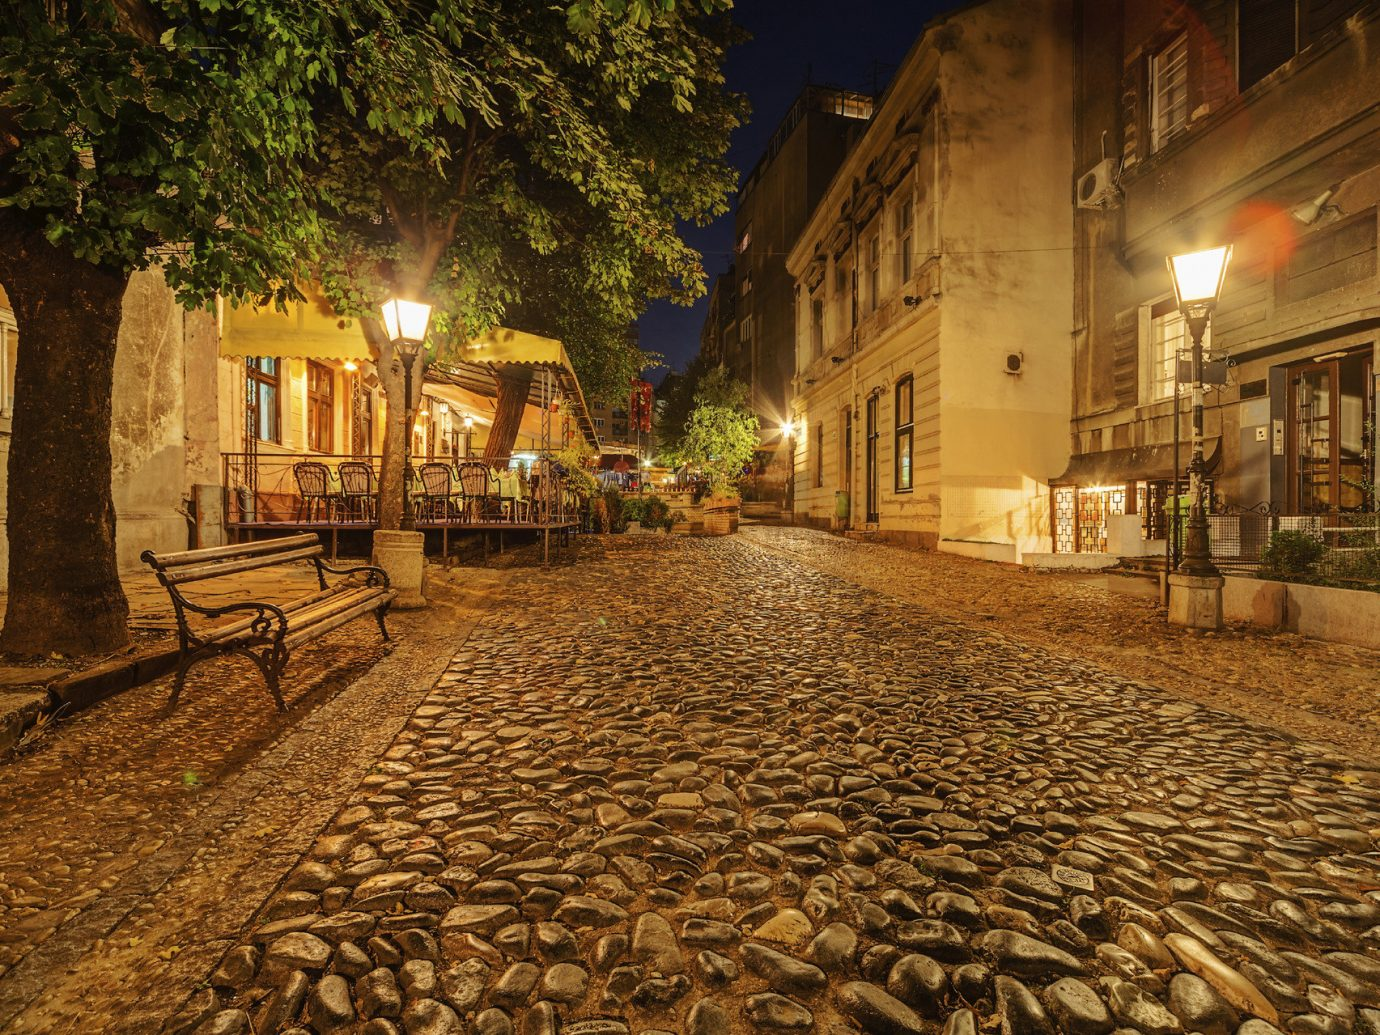 Trip Ideas outdoor ground road Town street neighbourhood night urban area human settlement alley evening Village way infrastructure ancient history sidewalk autumn several stone crowd